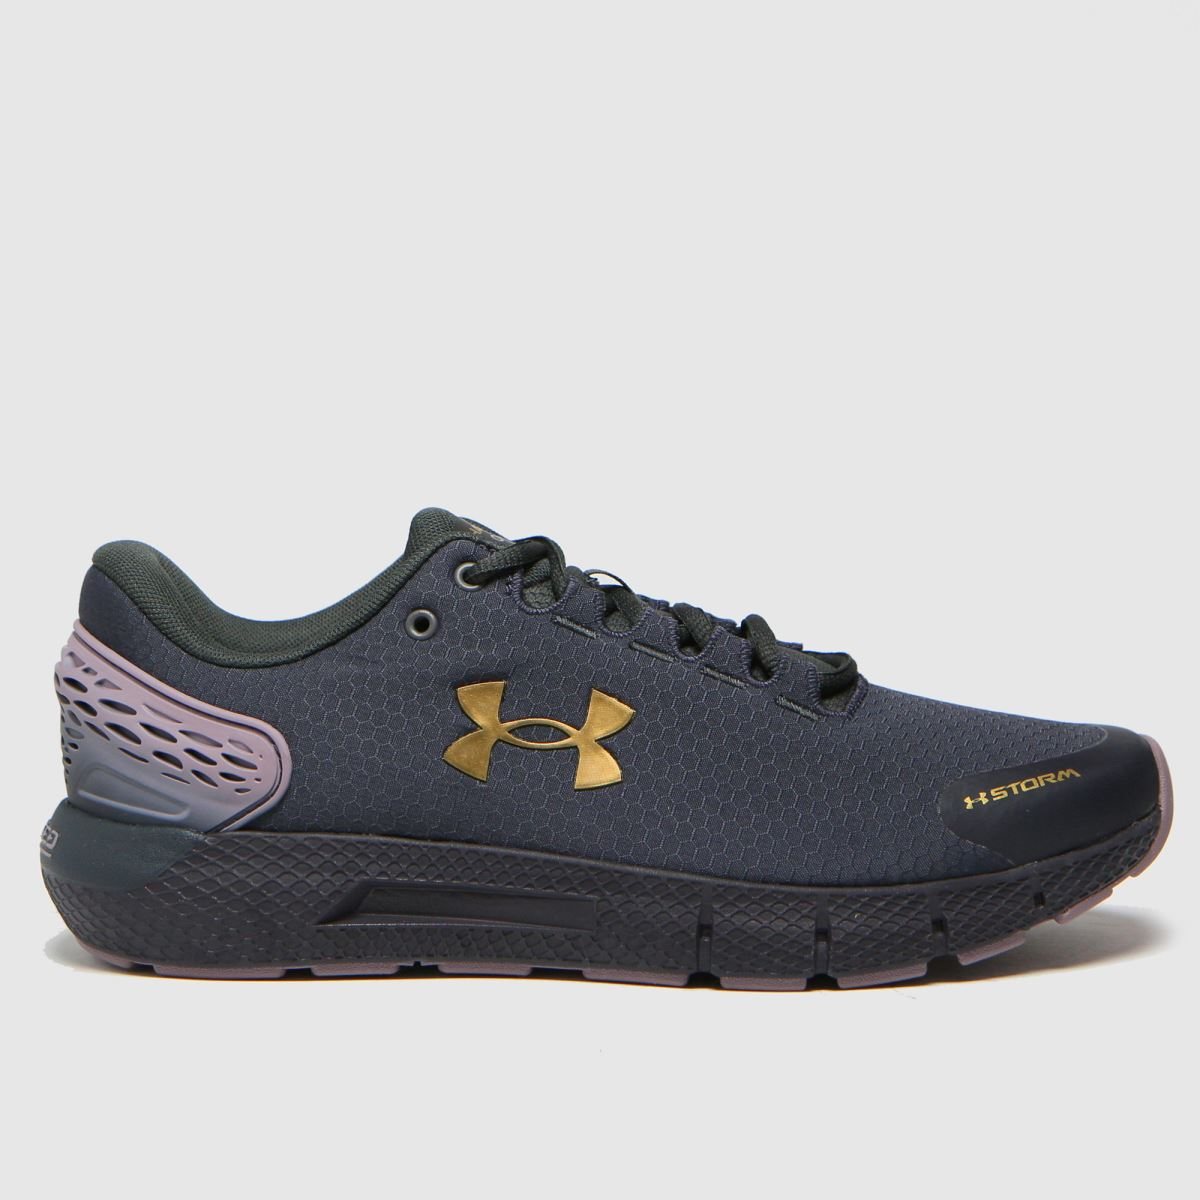 Under Armour Black & Gold Charged Rogue 2 Storm Trainers